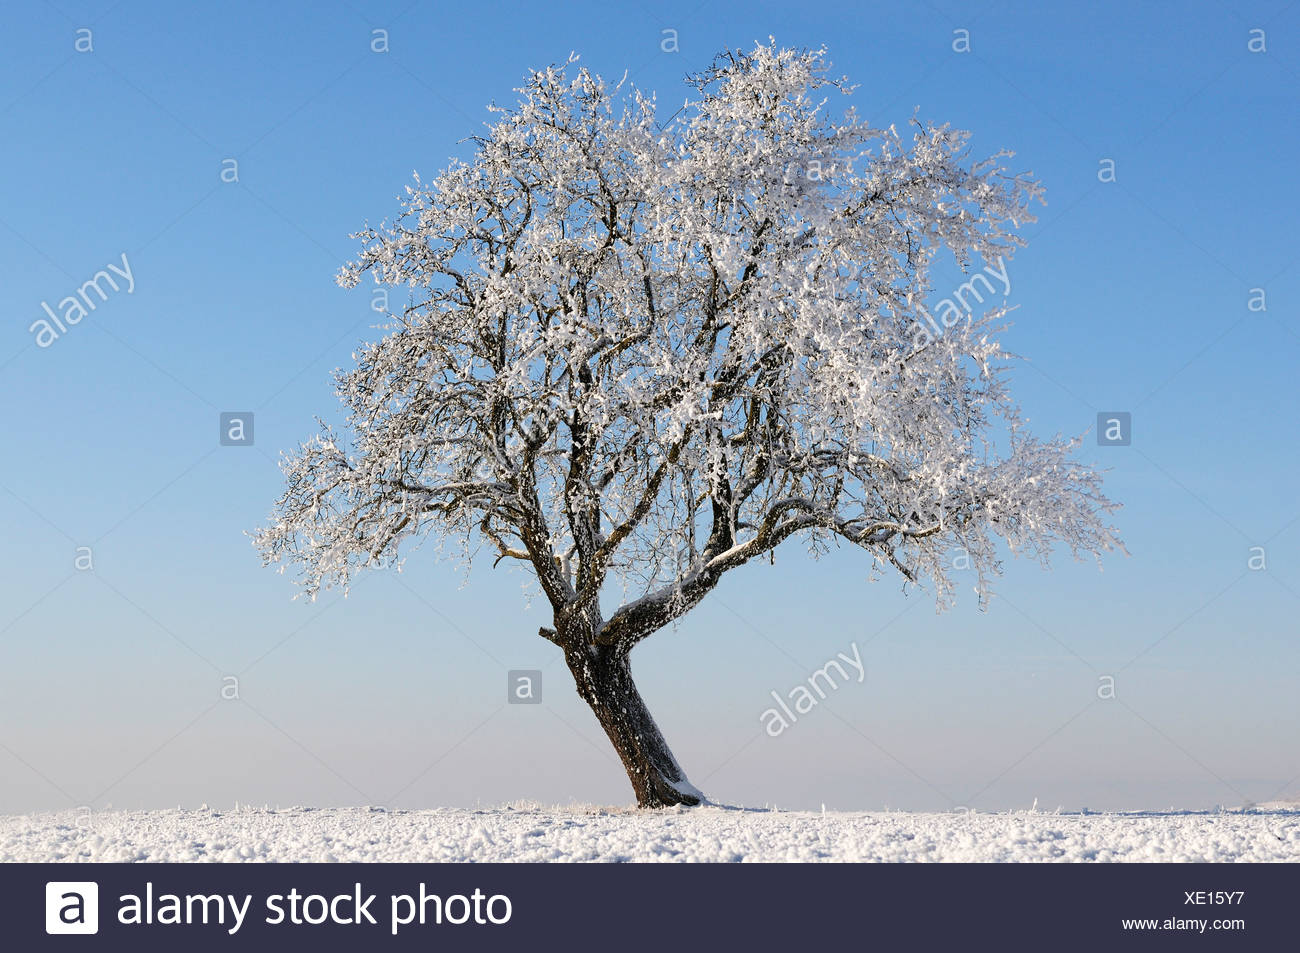 Old, frost-covered fruit tree - Stock Image